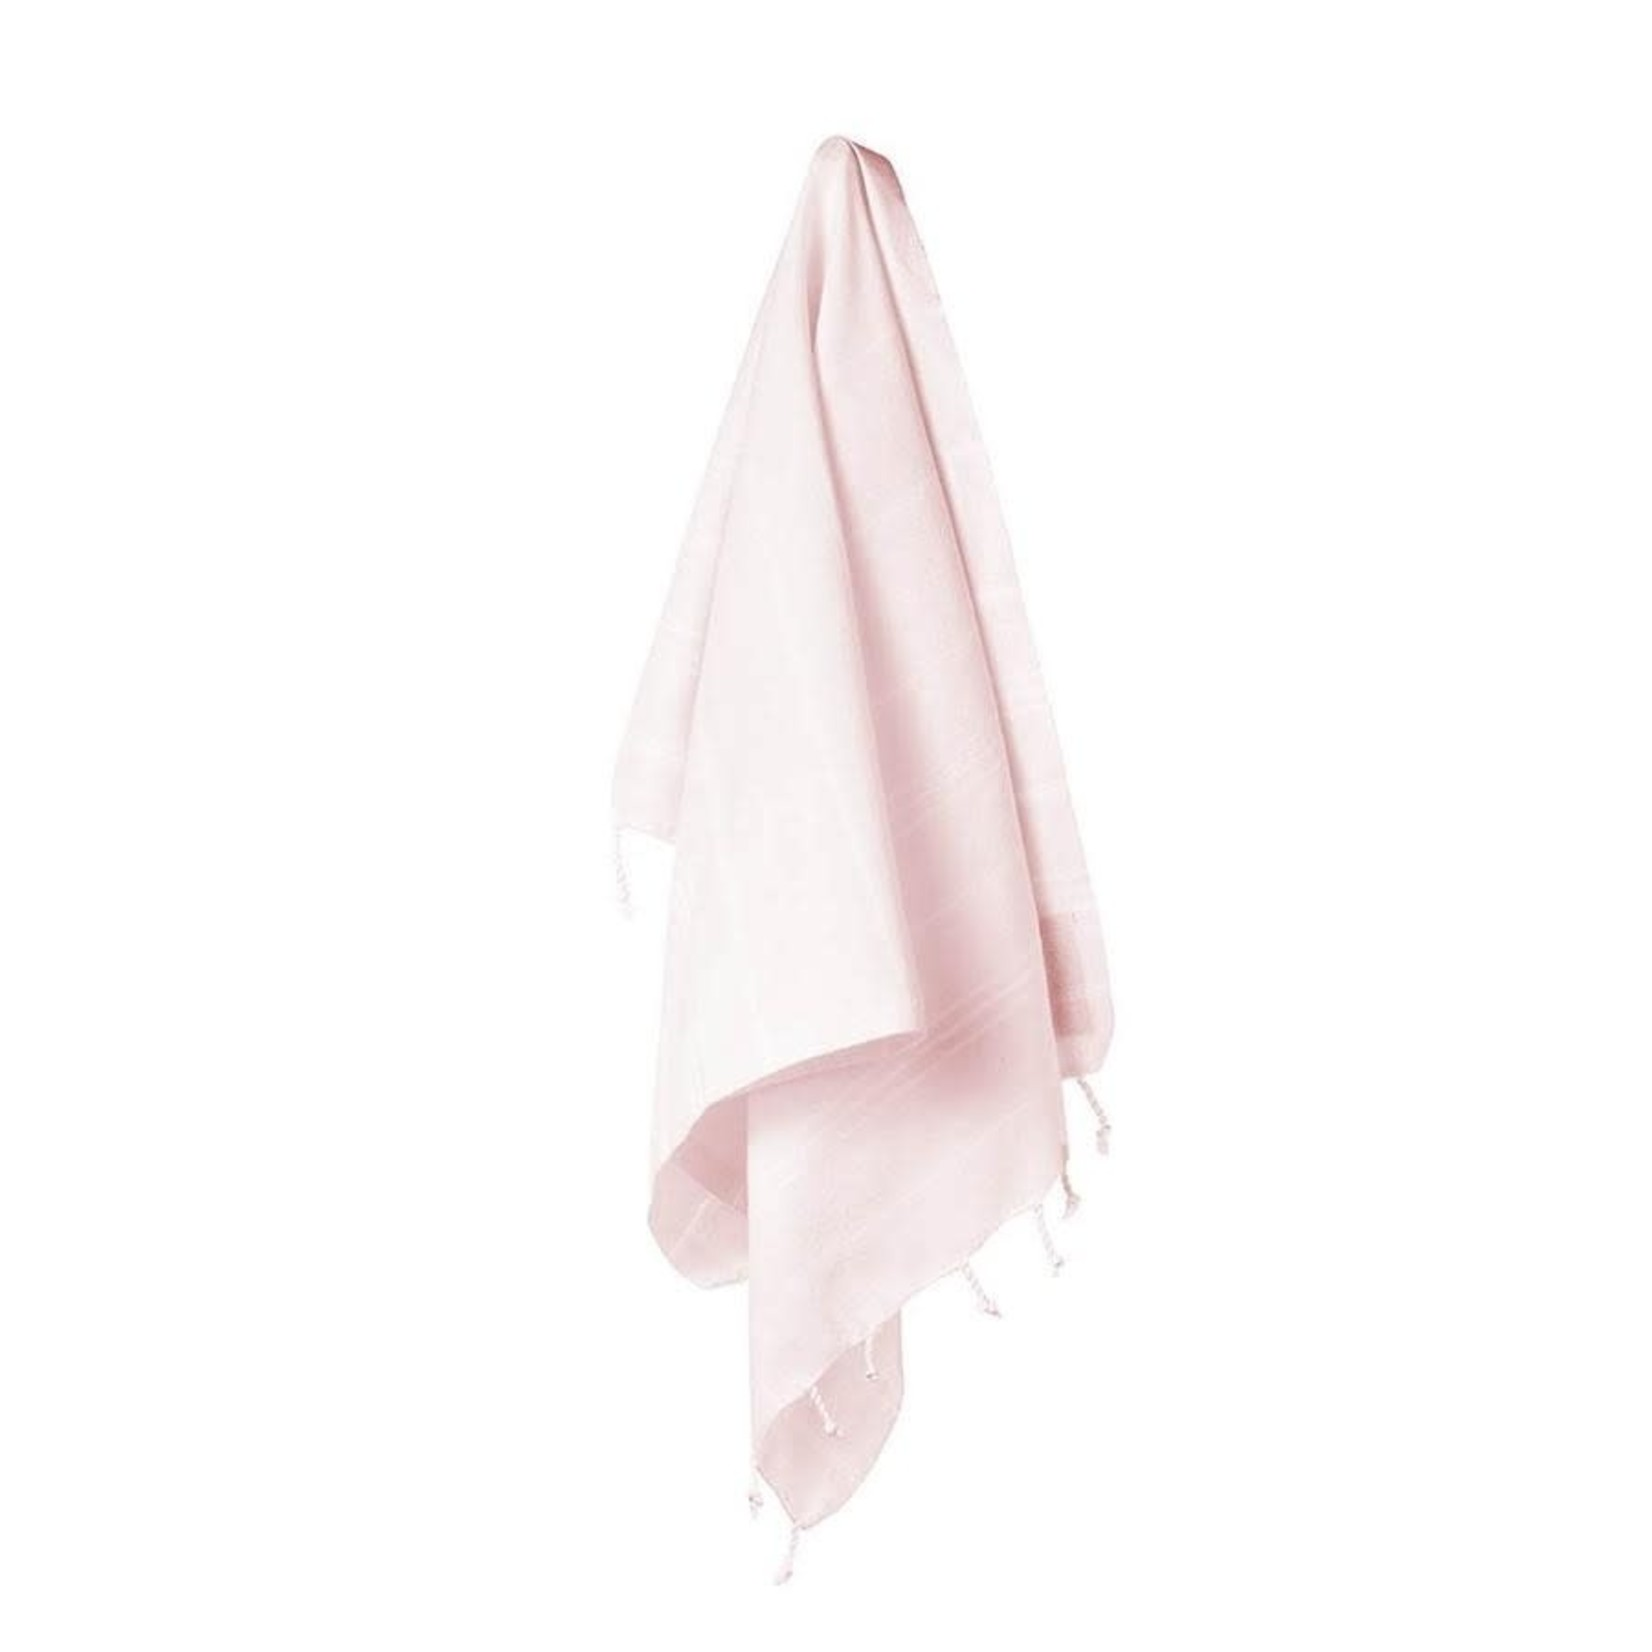 MARIN SMALL TOWEL - POWDER PINK